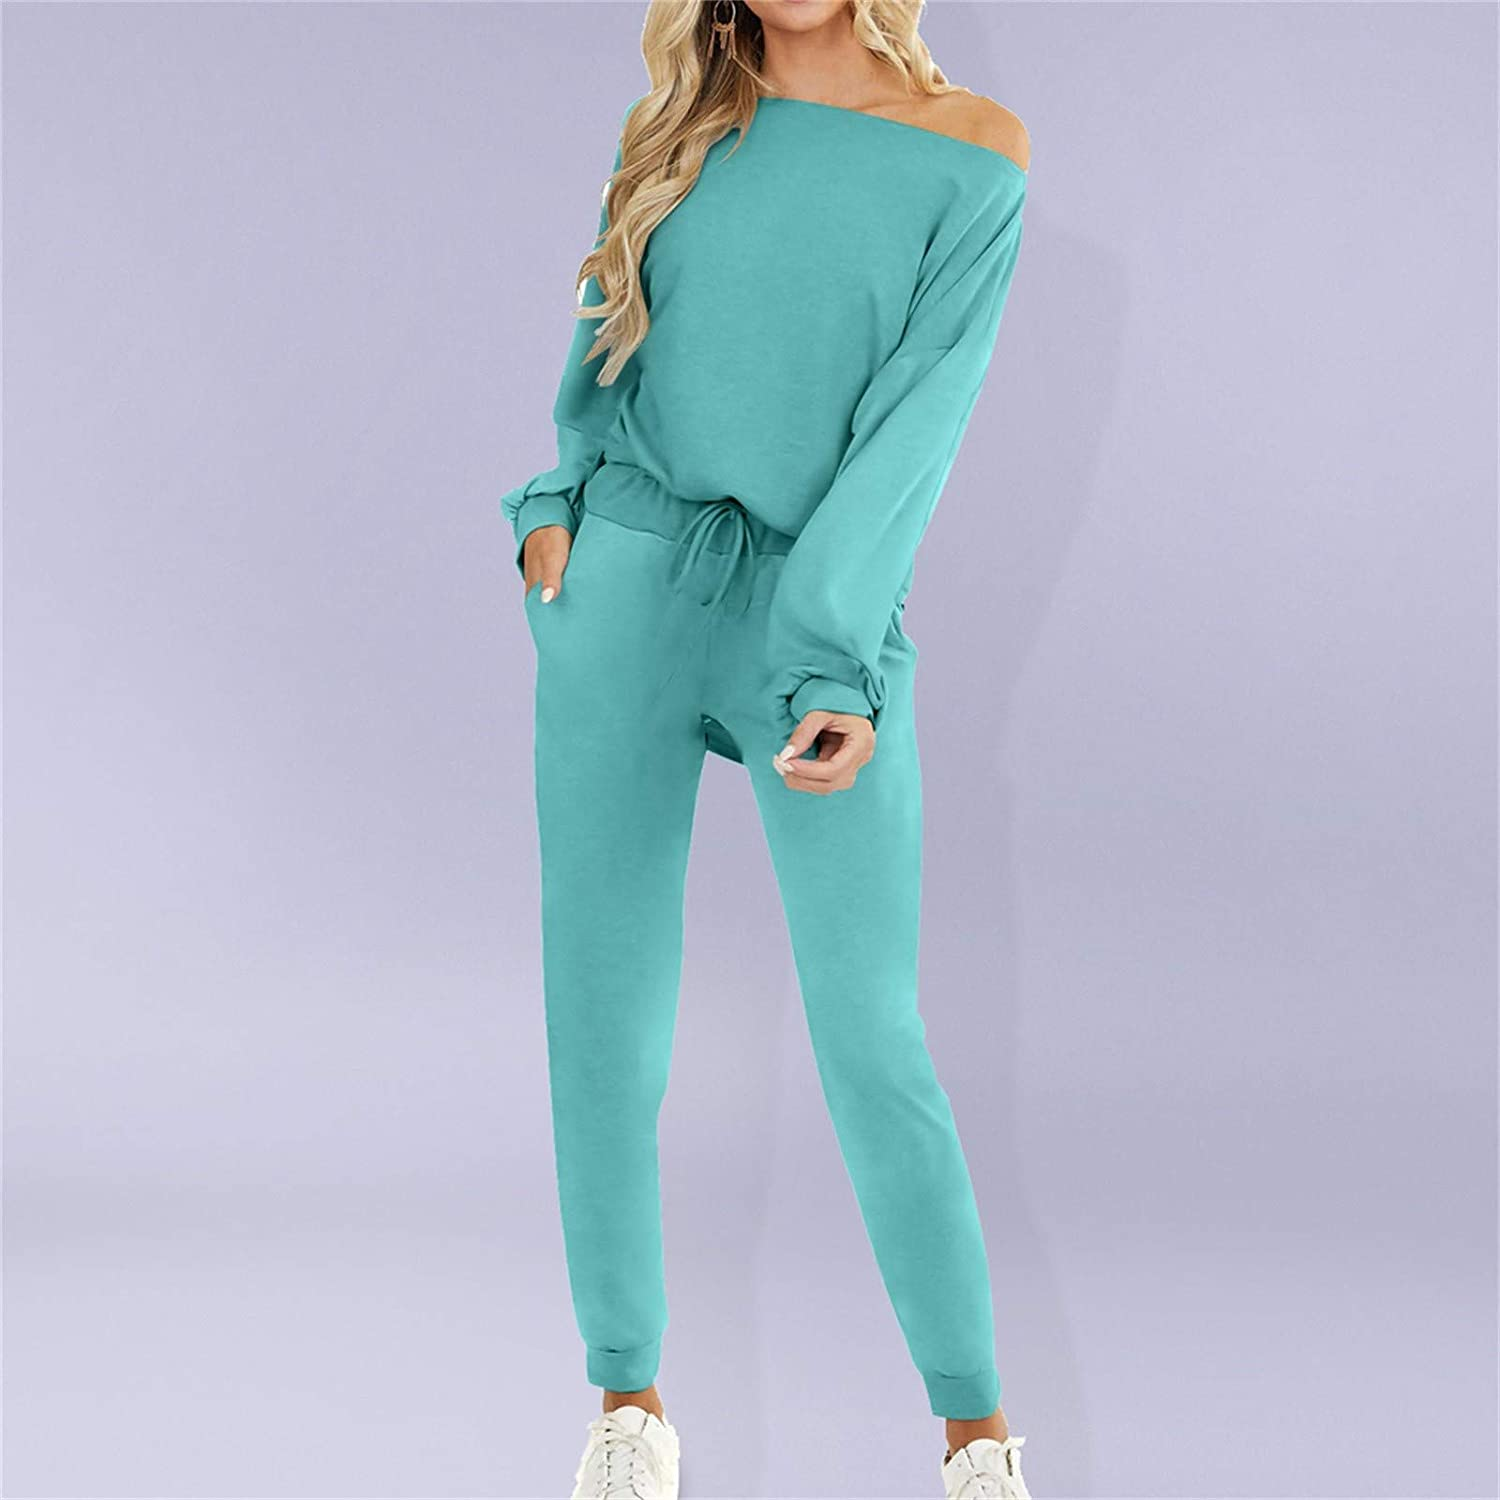 Mooua 2 Pcs Sports Yoga Suit Set for Women Fall Winter Casual Solid Color Long Sleeve Tops Trousers Tracksuit Running Gym Fitness Sportswear Green